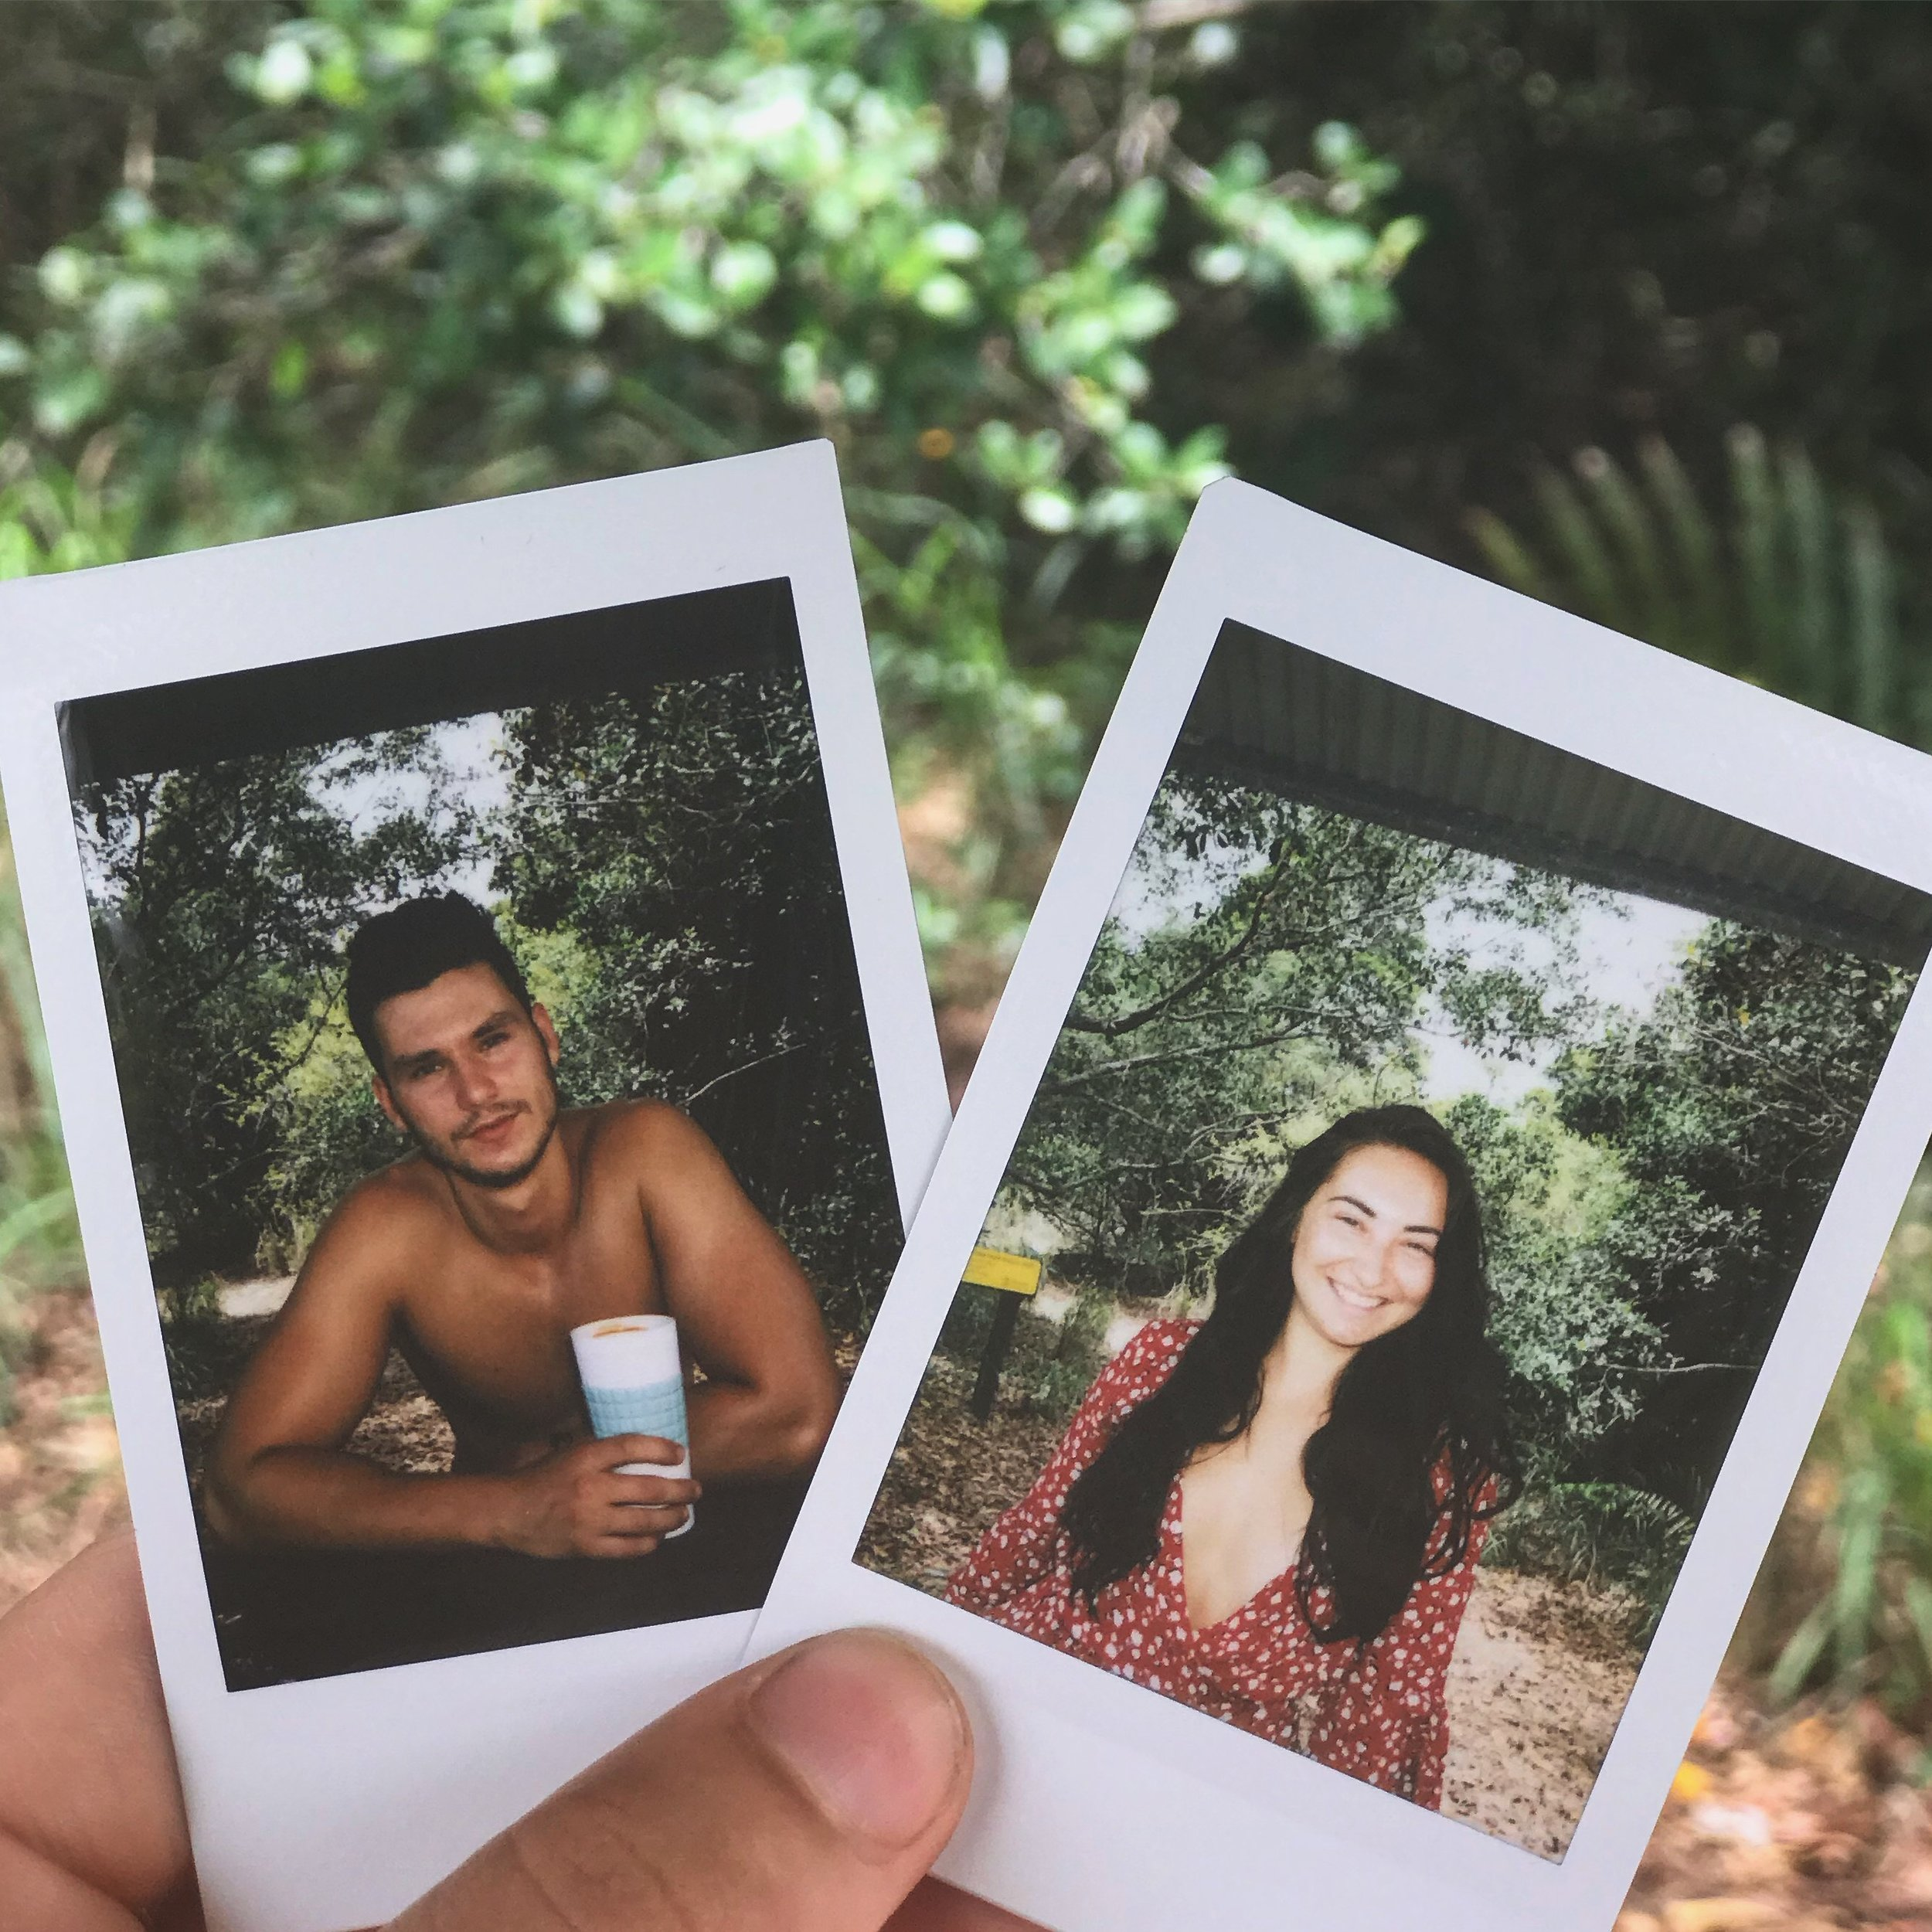 A polaroid of each other, for one another.